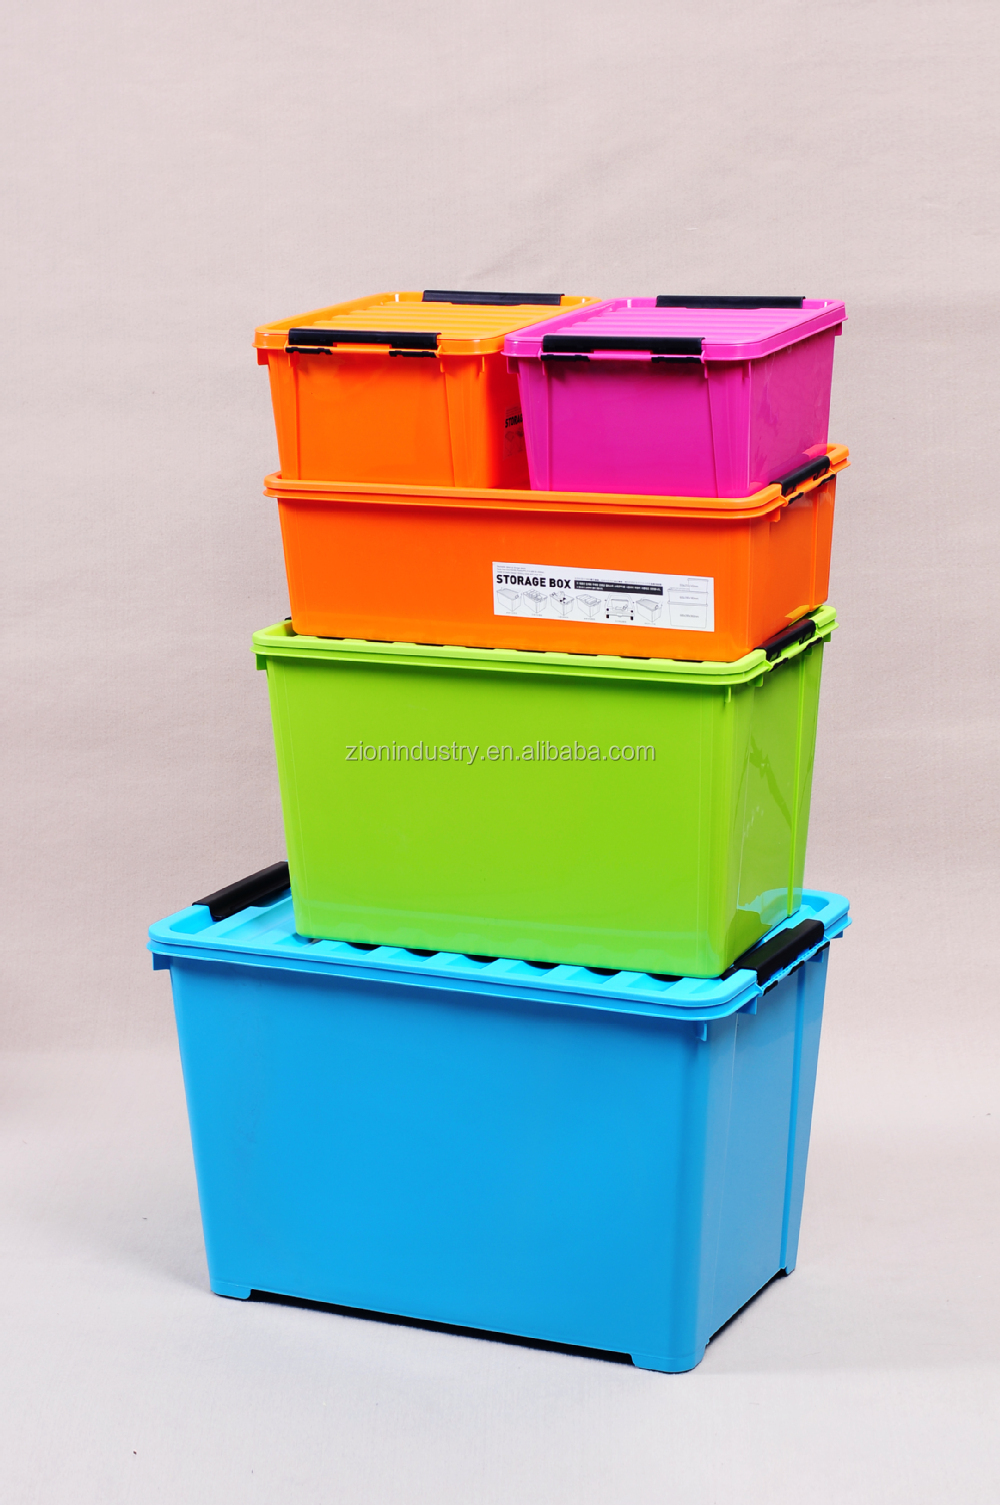 Recycled plastic storage boxes - 8 5l Orange Plastic Storage Box